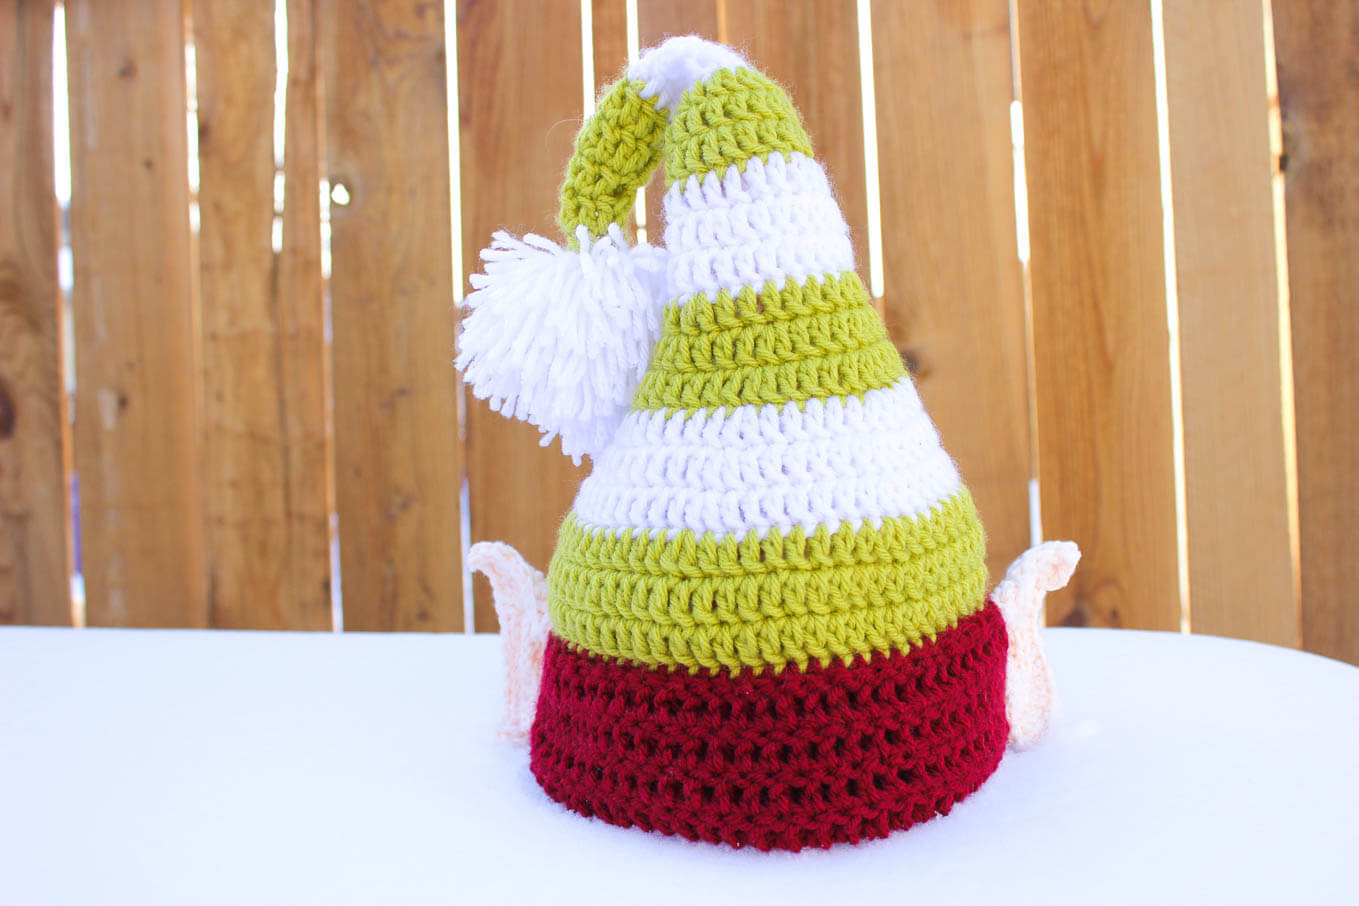 Free Crochet Baby Hat Patterns Inspirational Santa S Helper Free Crochet Elf Hat Pattern with Ears Of Adorable 48 Pics Free Crochet Baby Hat Patterns